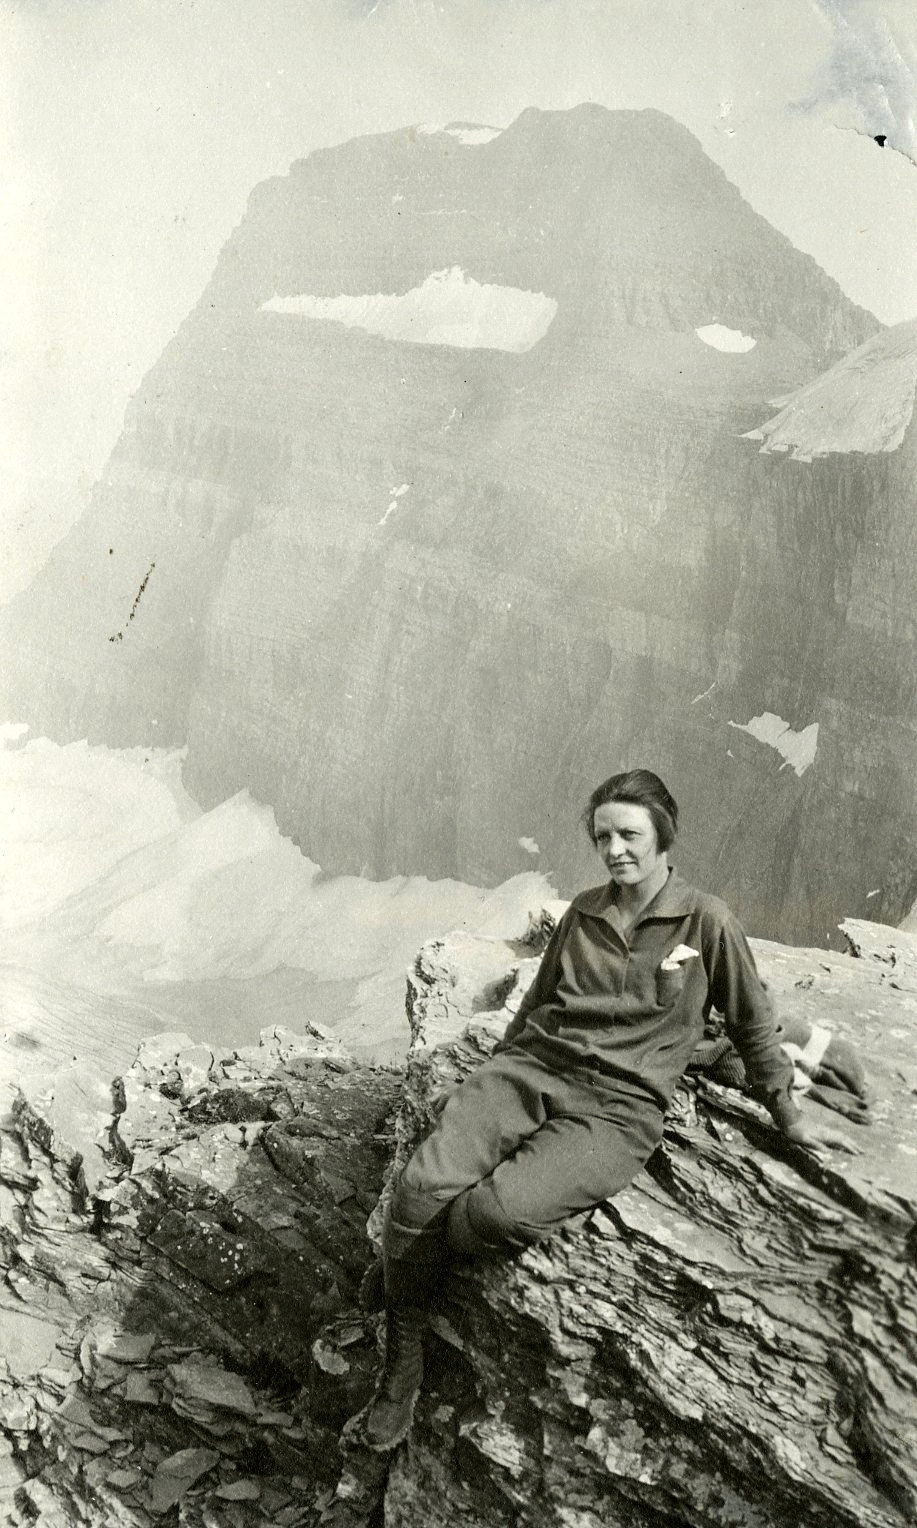 Mary Cronin on a CMC trip in the 1920s